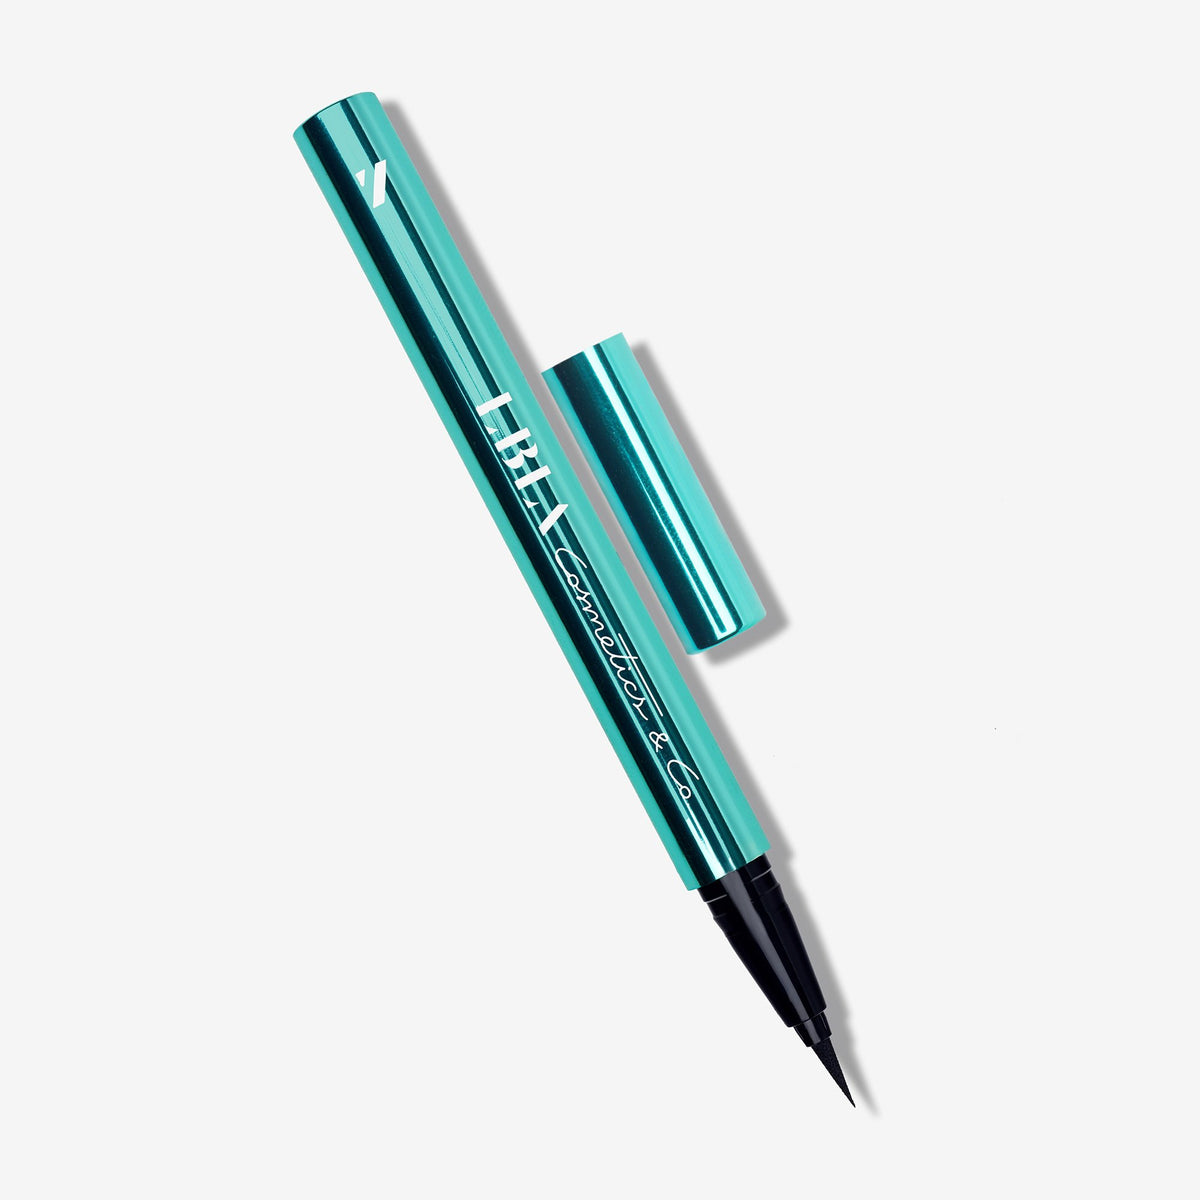 LBLA COSMETICS & CO. EVERLASTING EYELINER